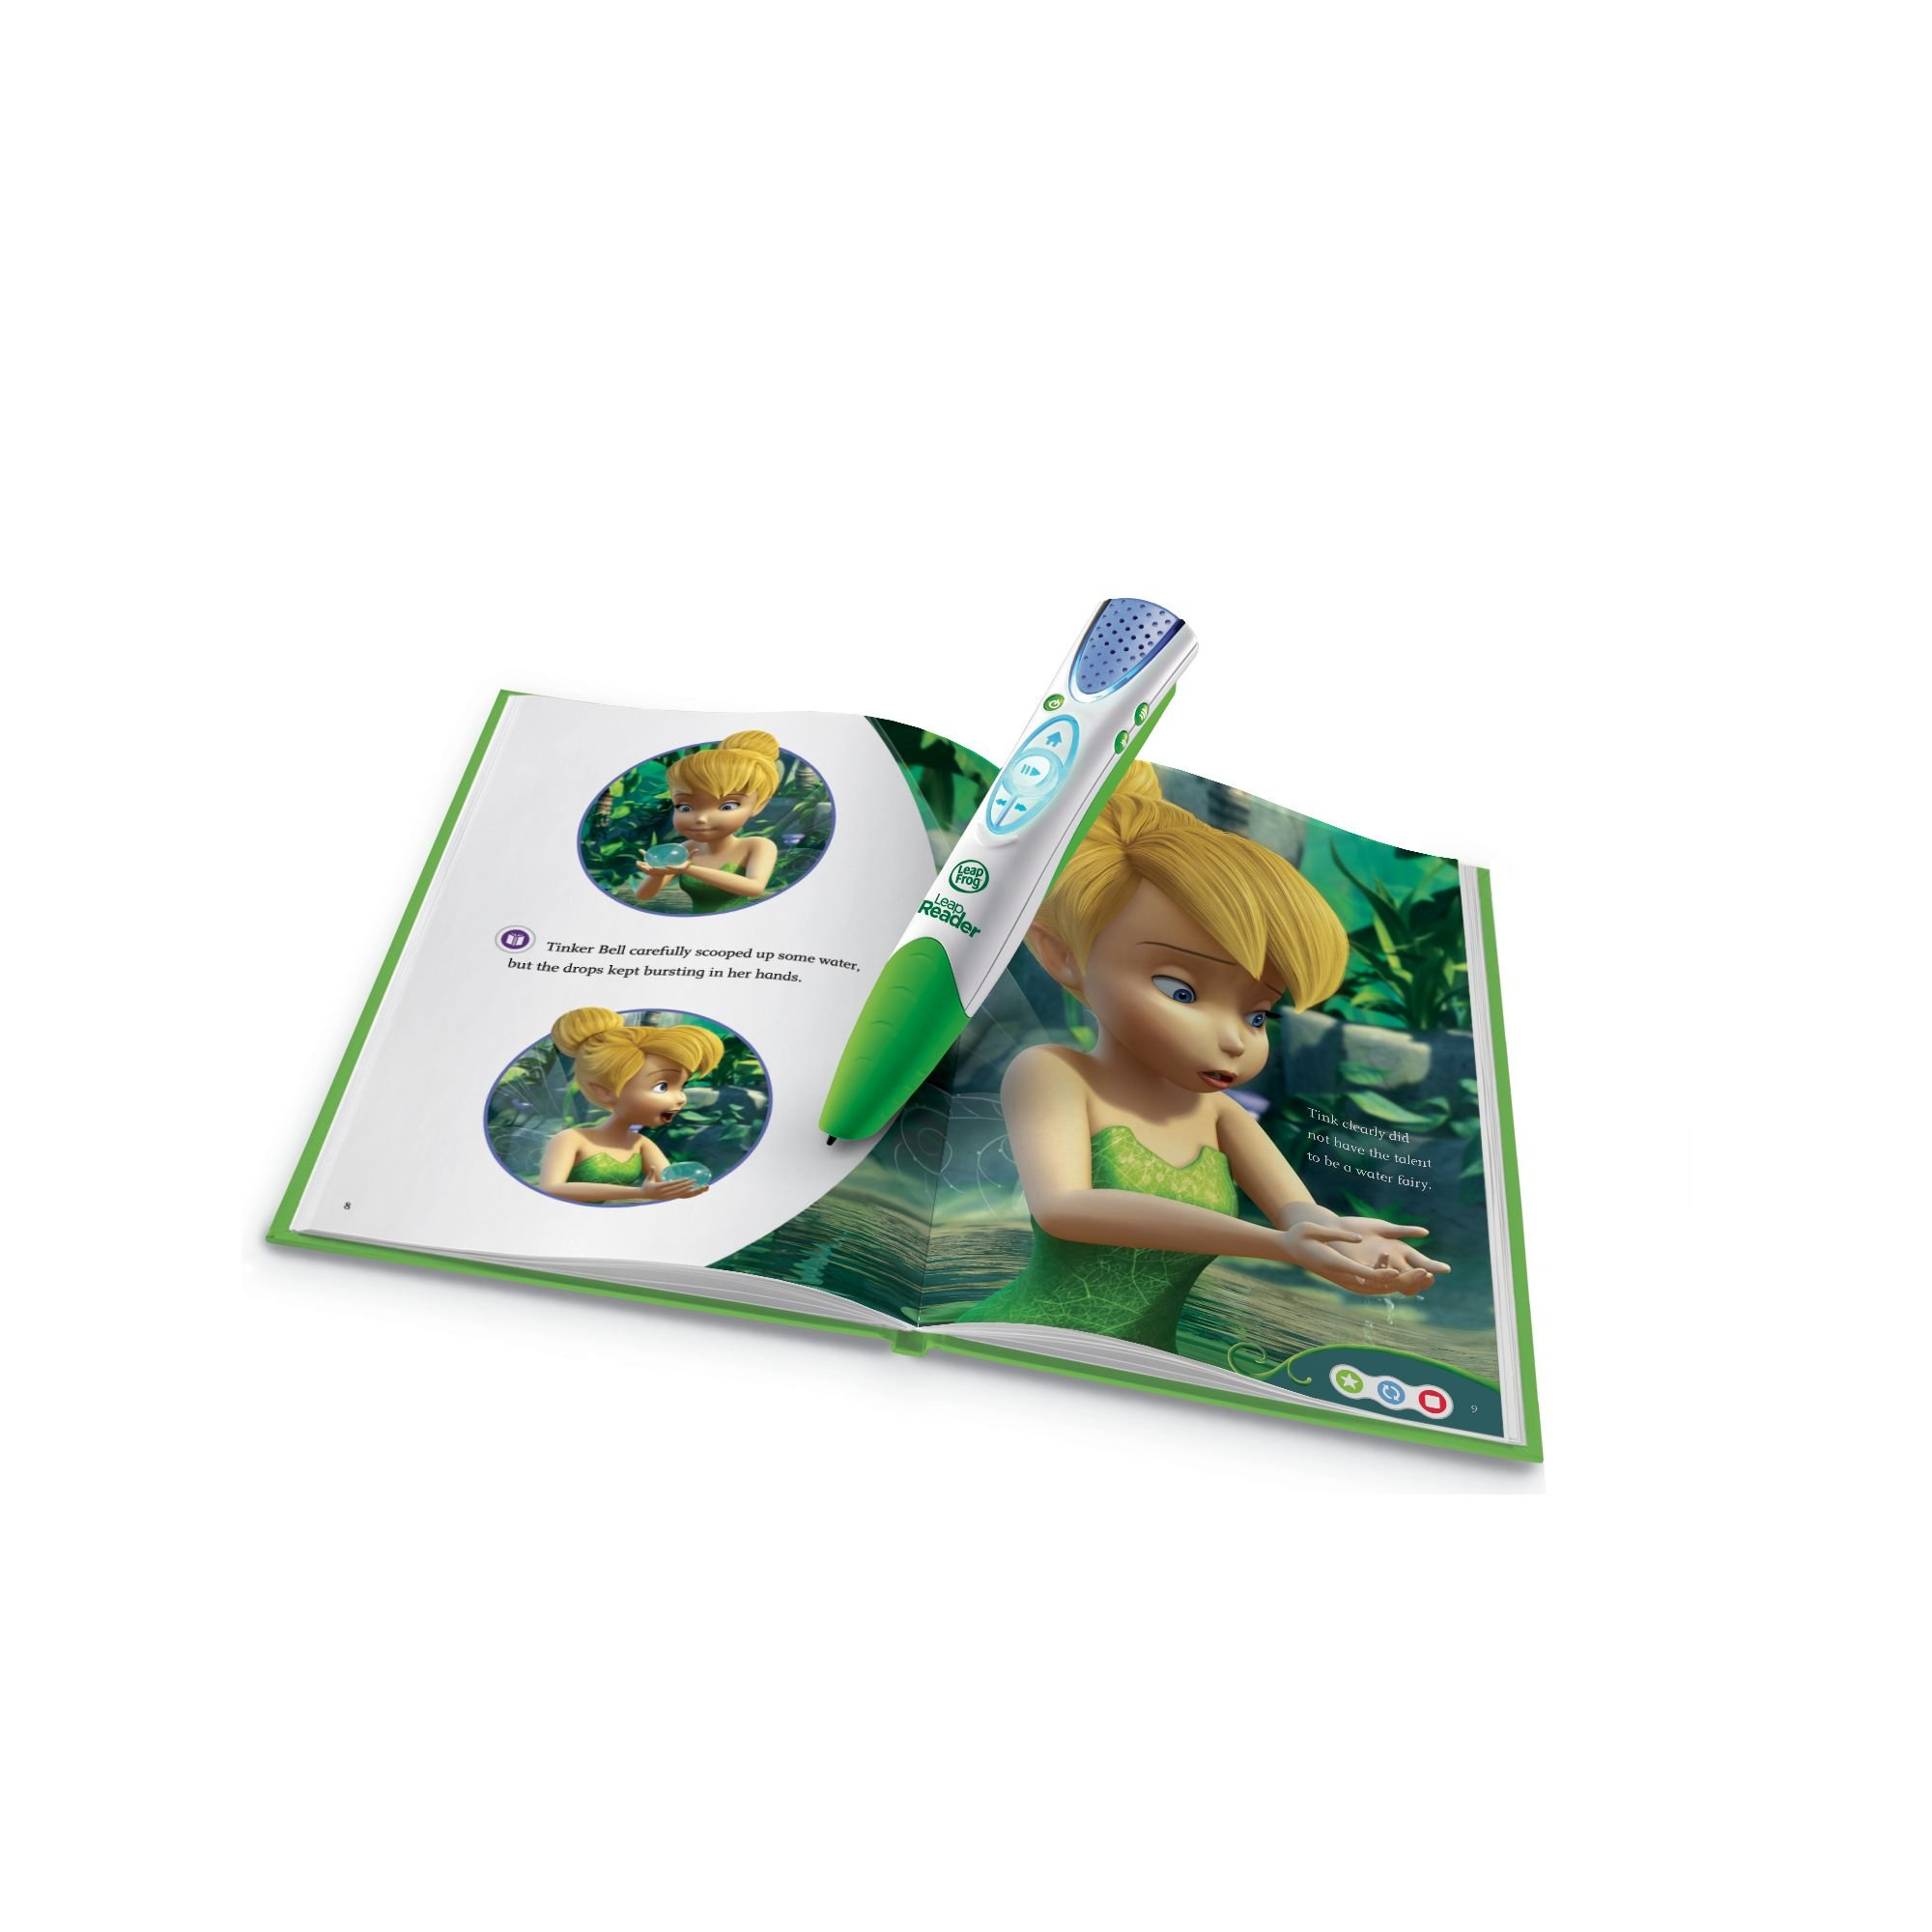 LeapFrog LeapReader Book: Disney Fairies Tinker Bell's True Talent (works with Tag) by LeapFrog (Image #2)